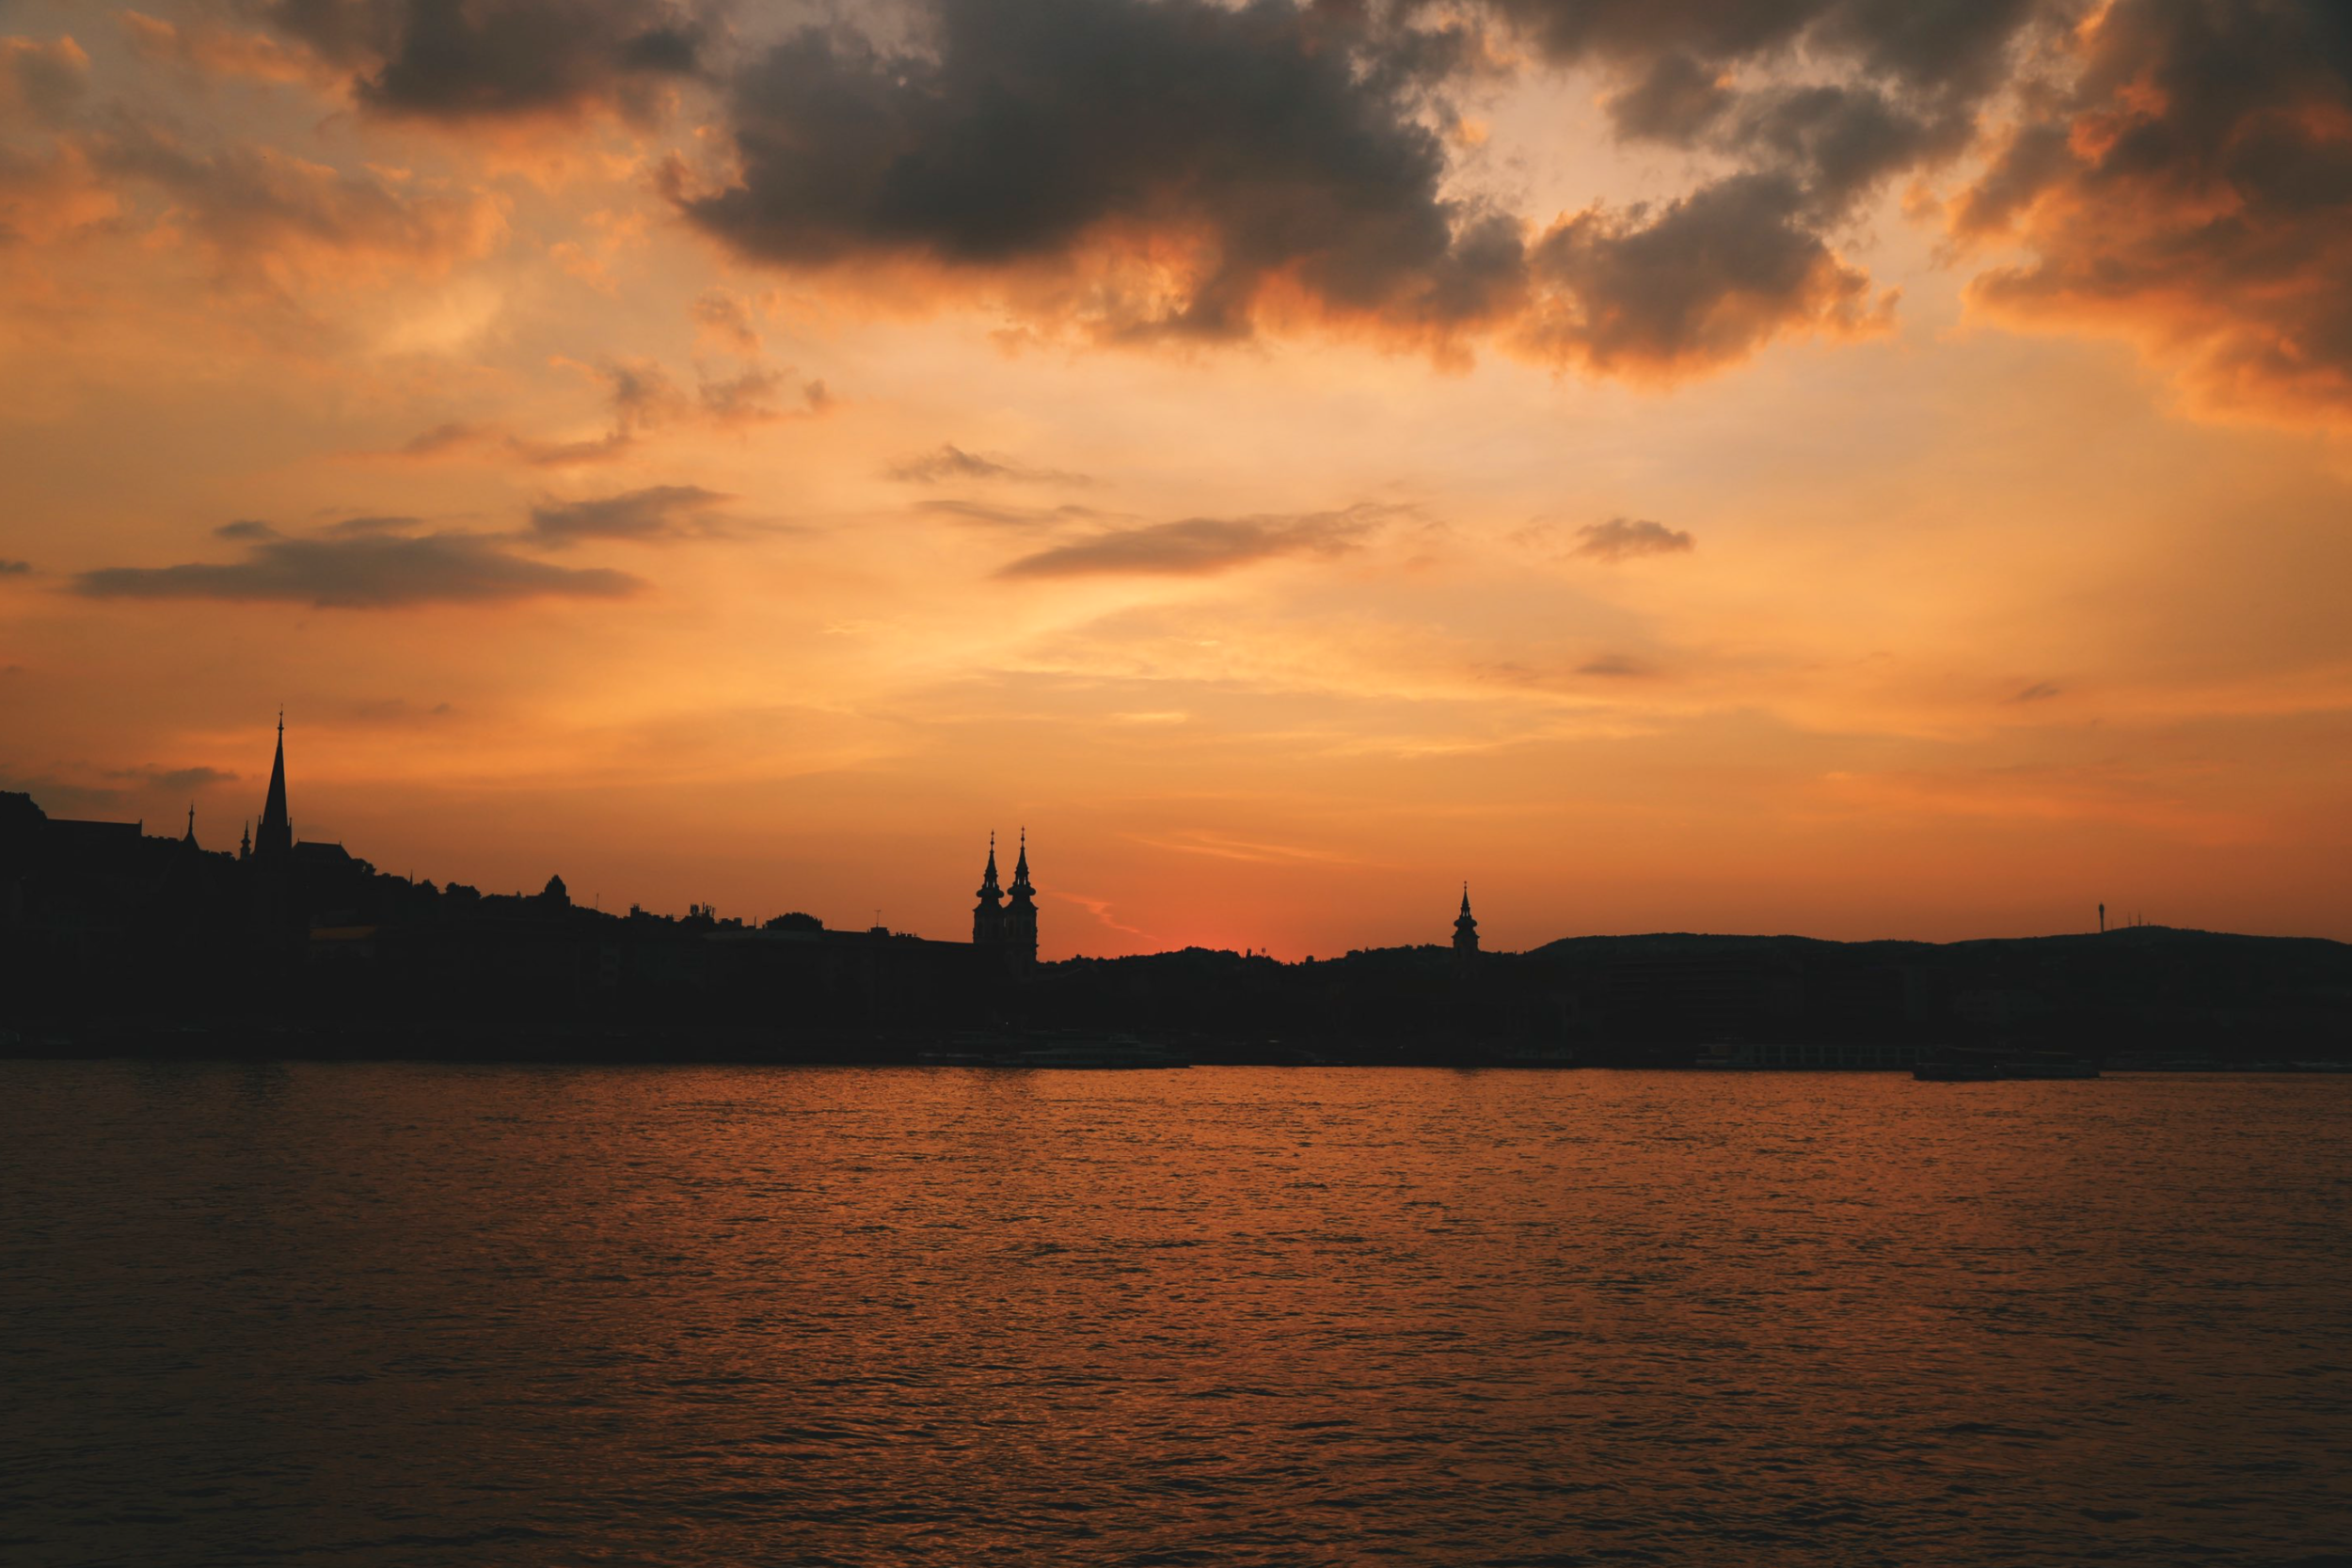 Sunset over the Danube.